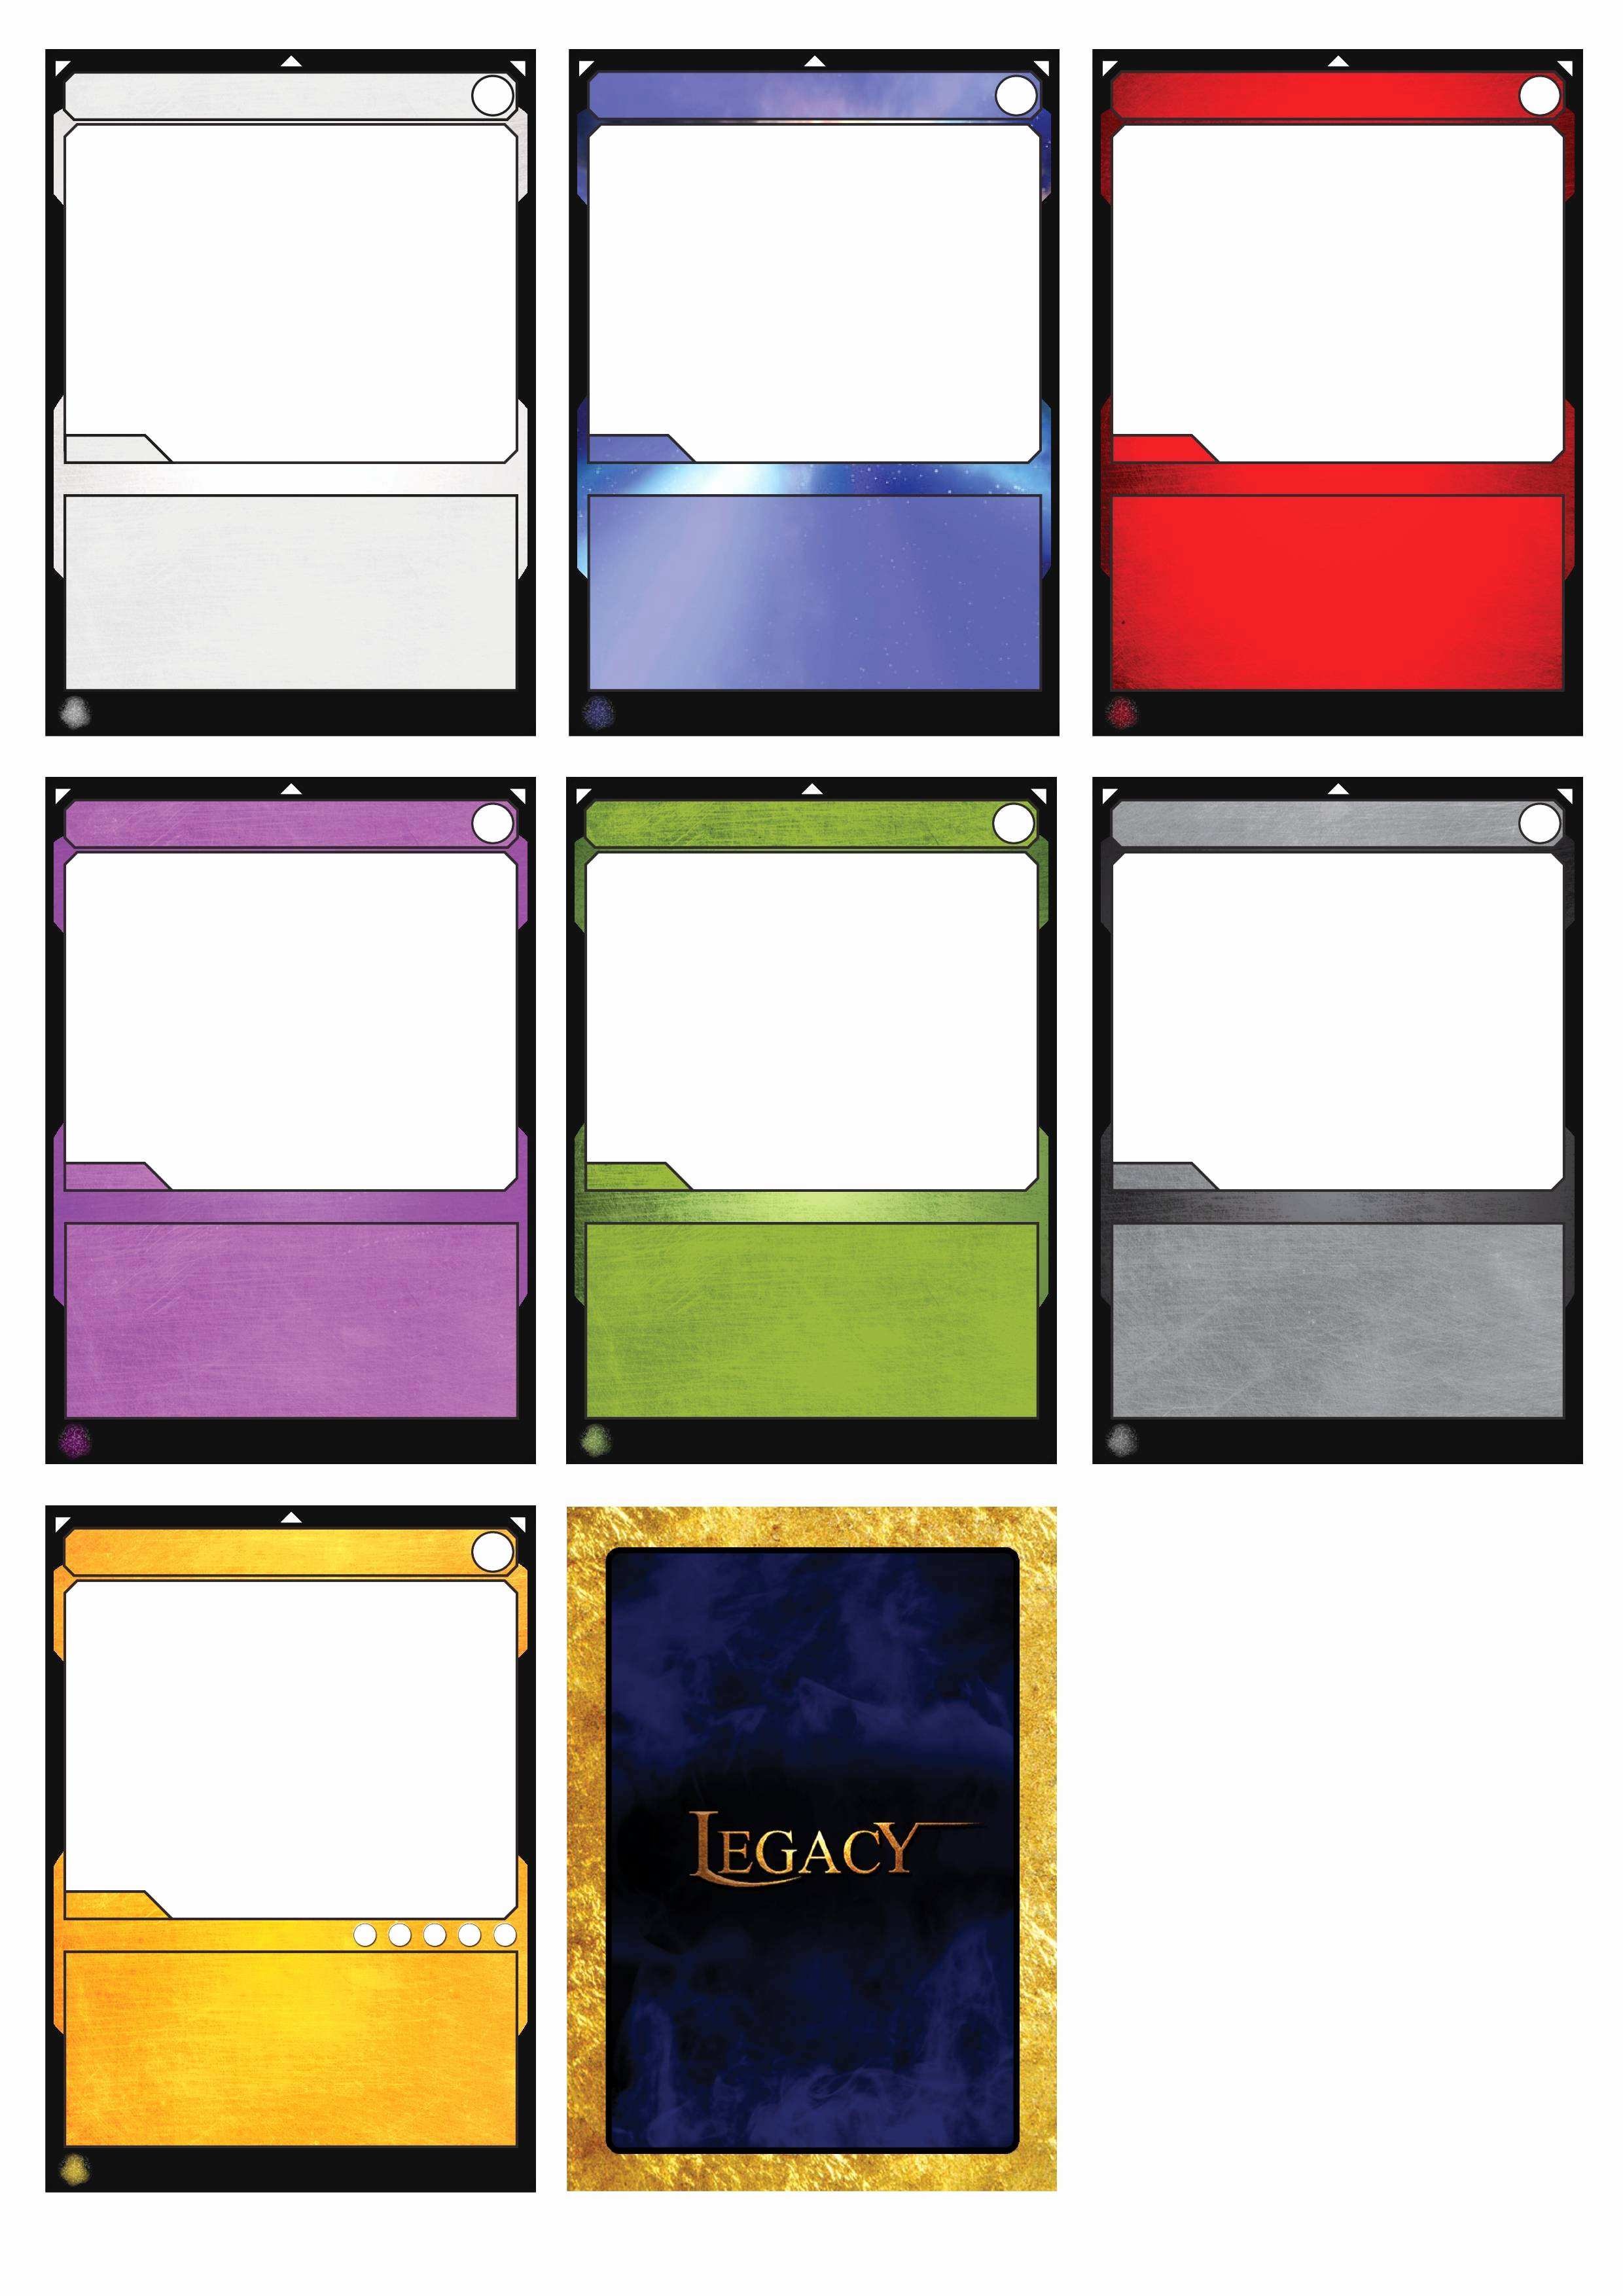 Blank Game Card Template Awesome Best S Of Cards Game Board Template Board Game